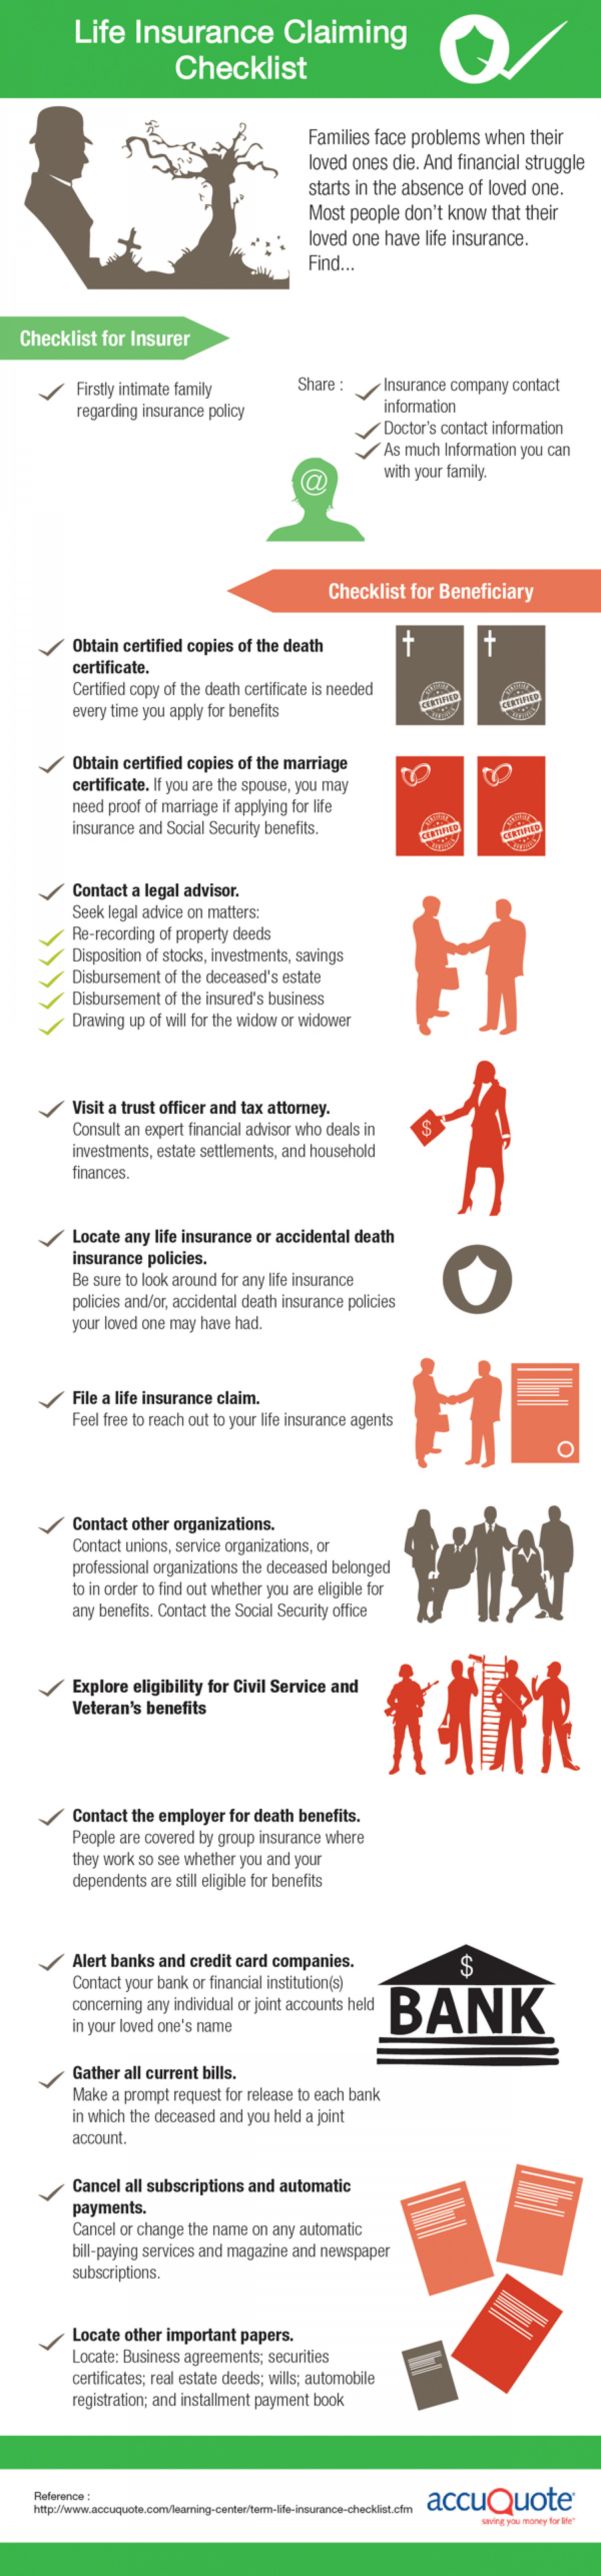 Life Insurance Claiming Checklist Infographic